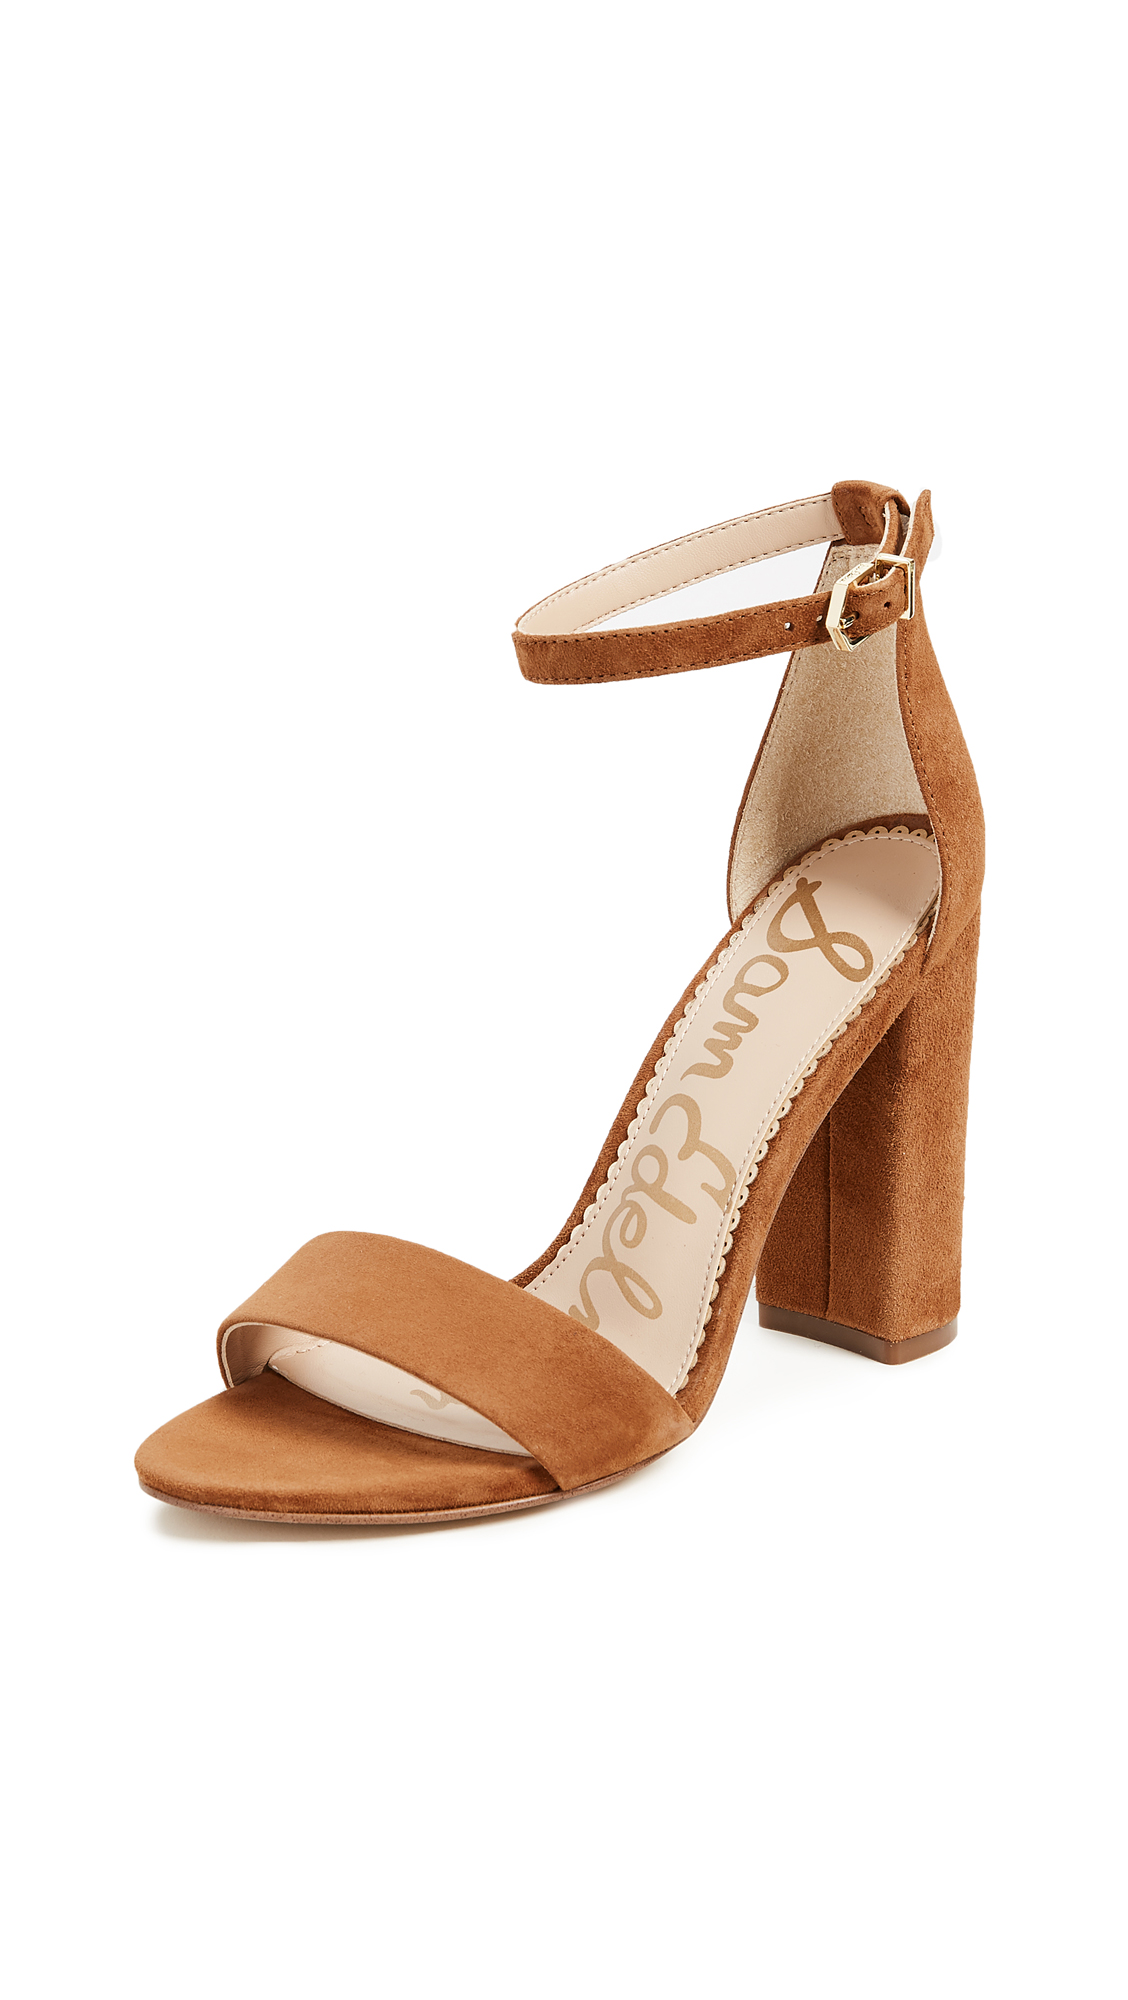 Sam Edelman Yaro Sandals - Brown